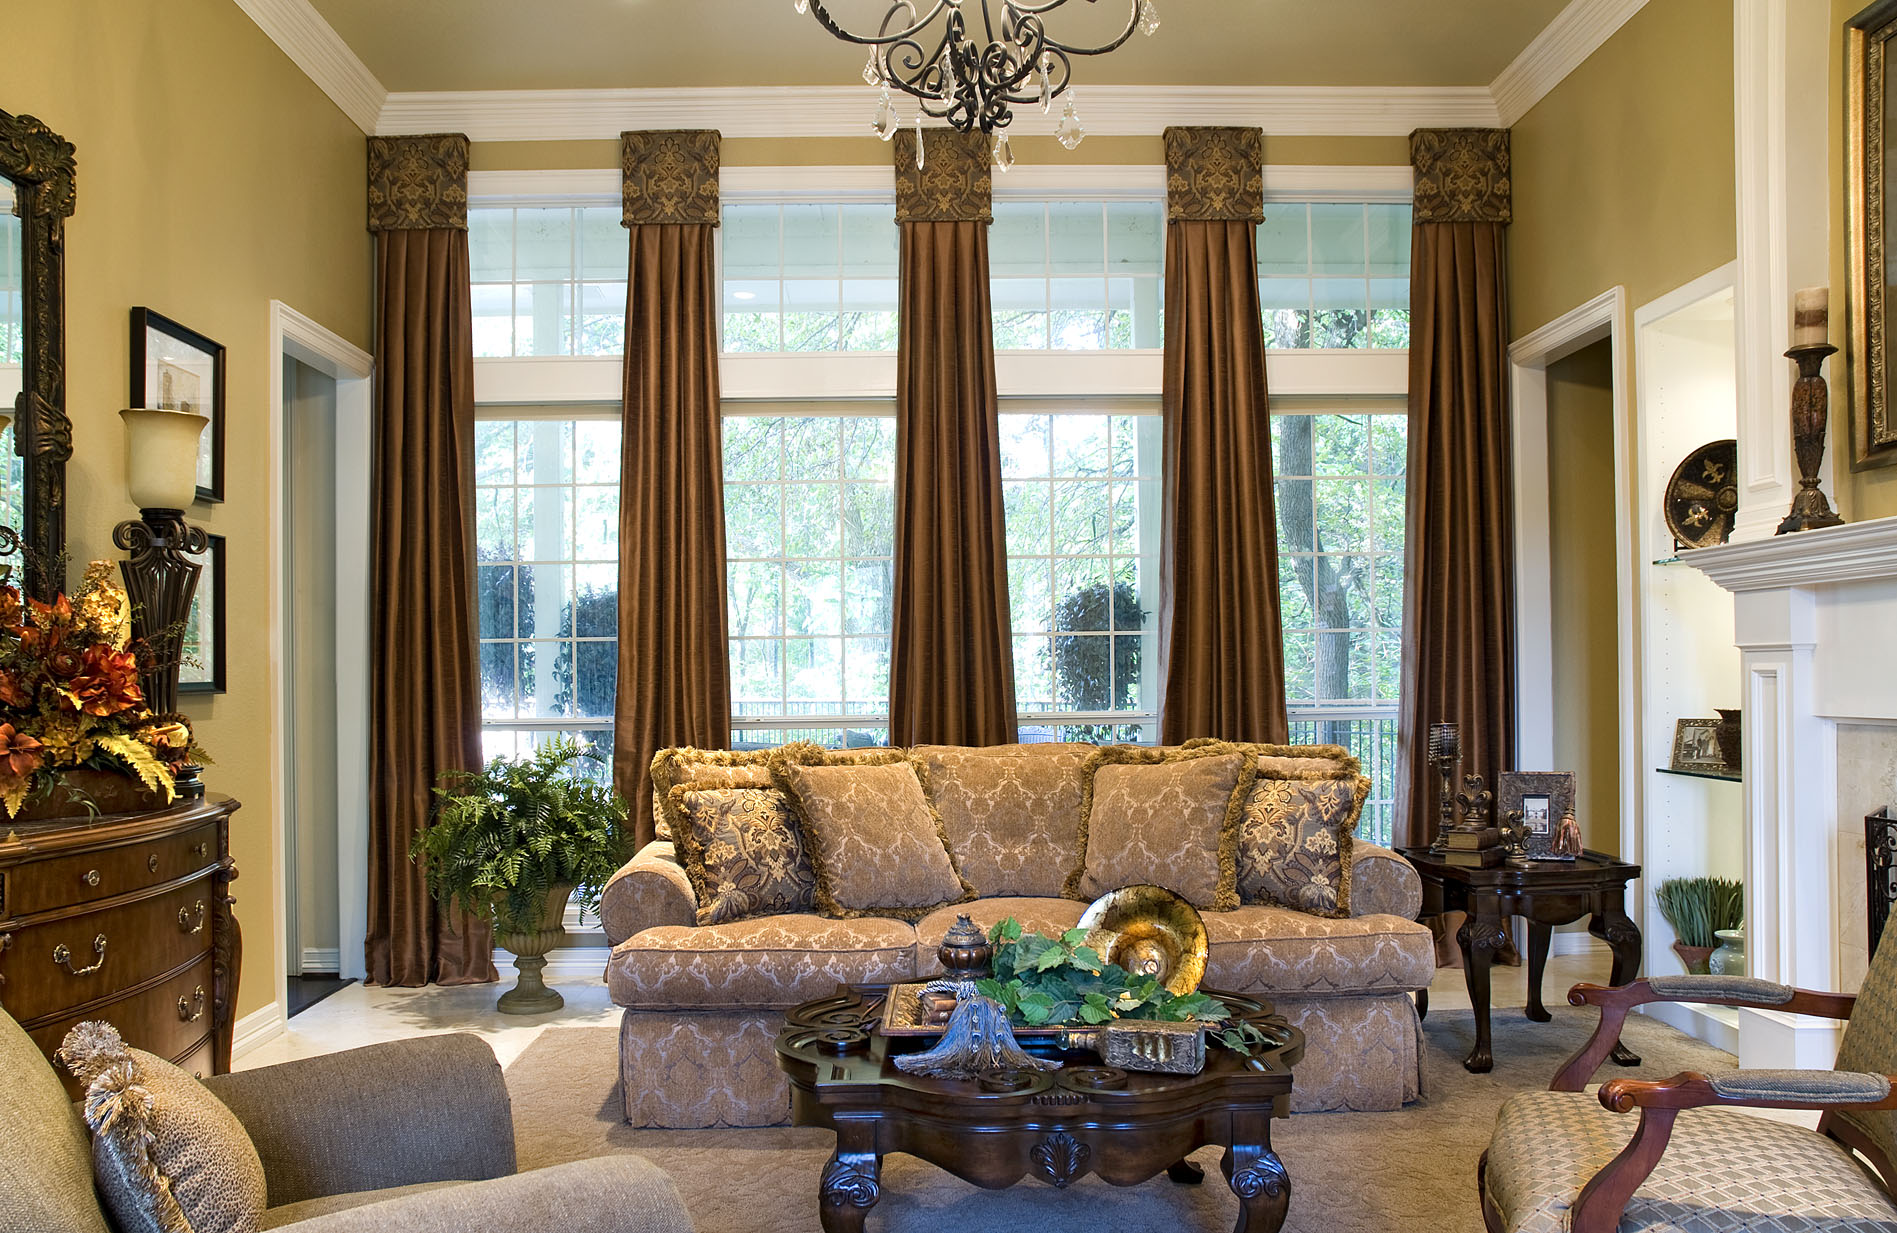 Window Treatments With Drama And Panache Decorating Den Interiors Blog Decorating Tips Design